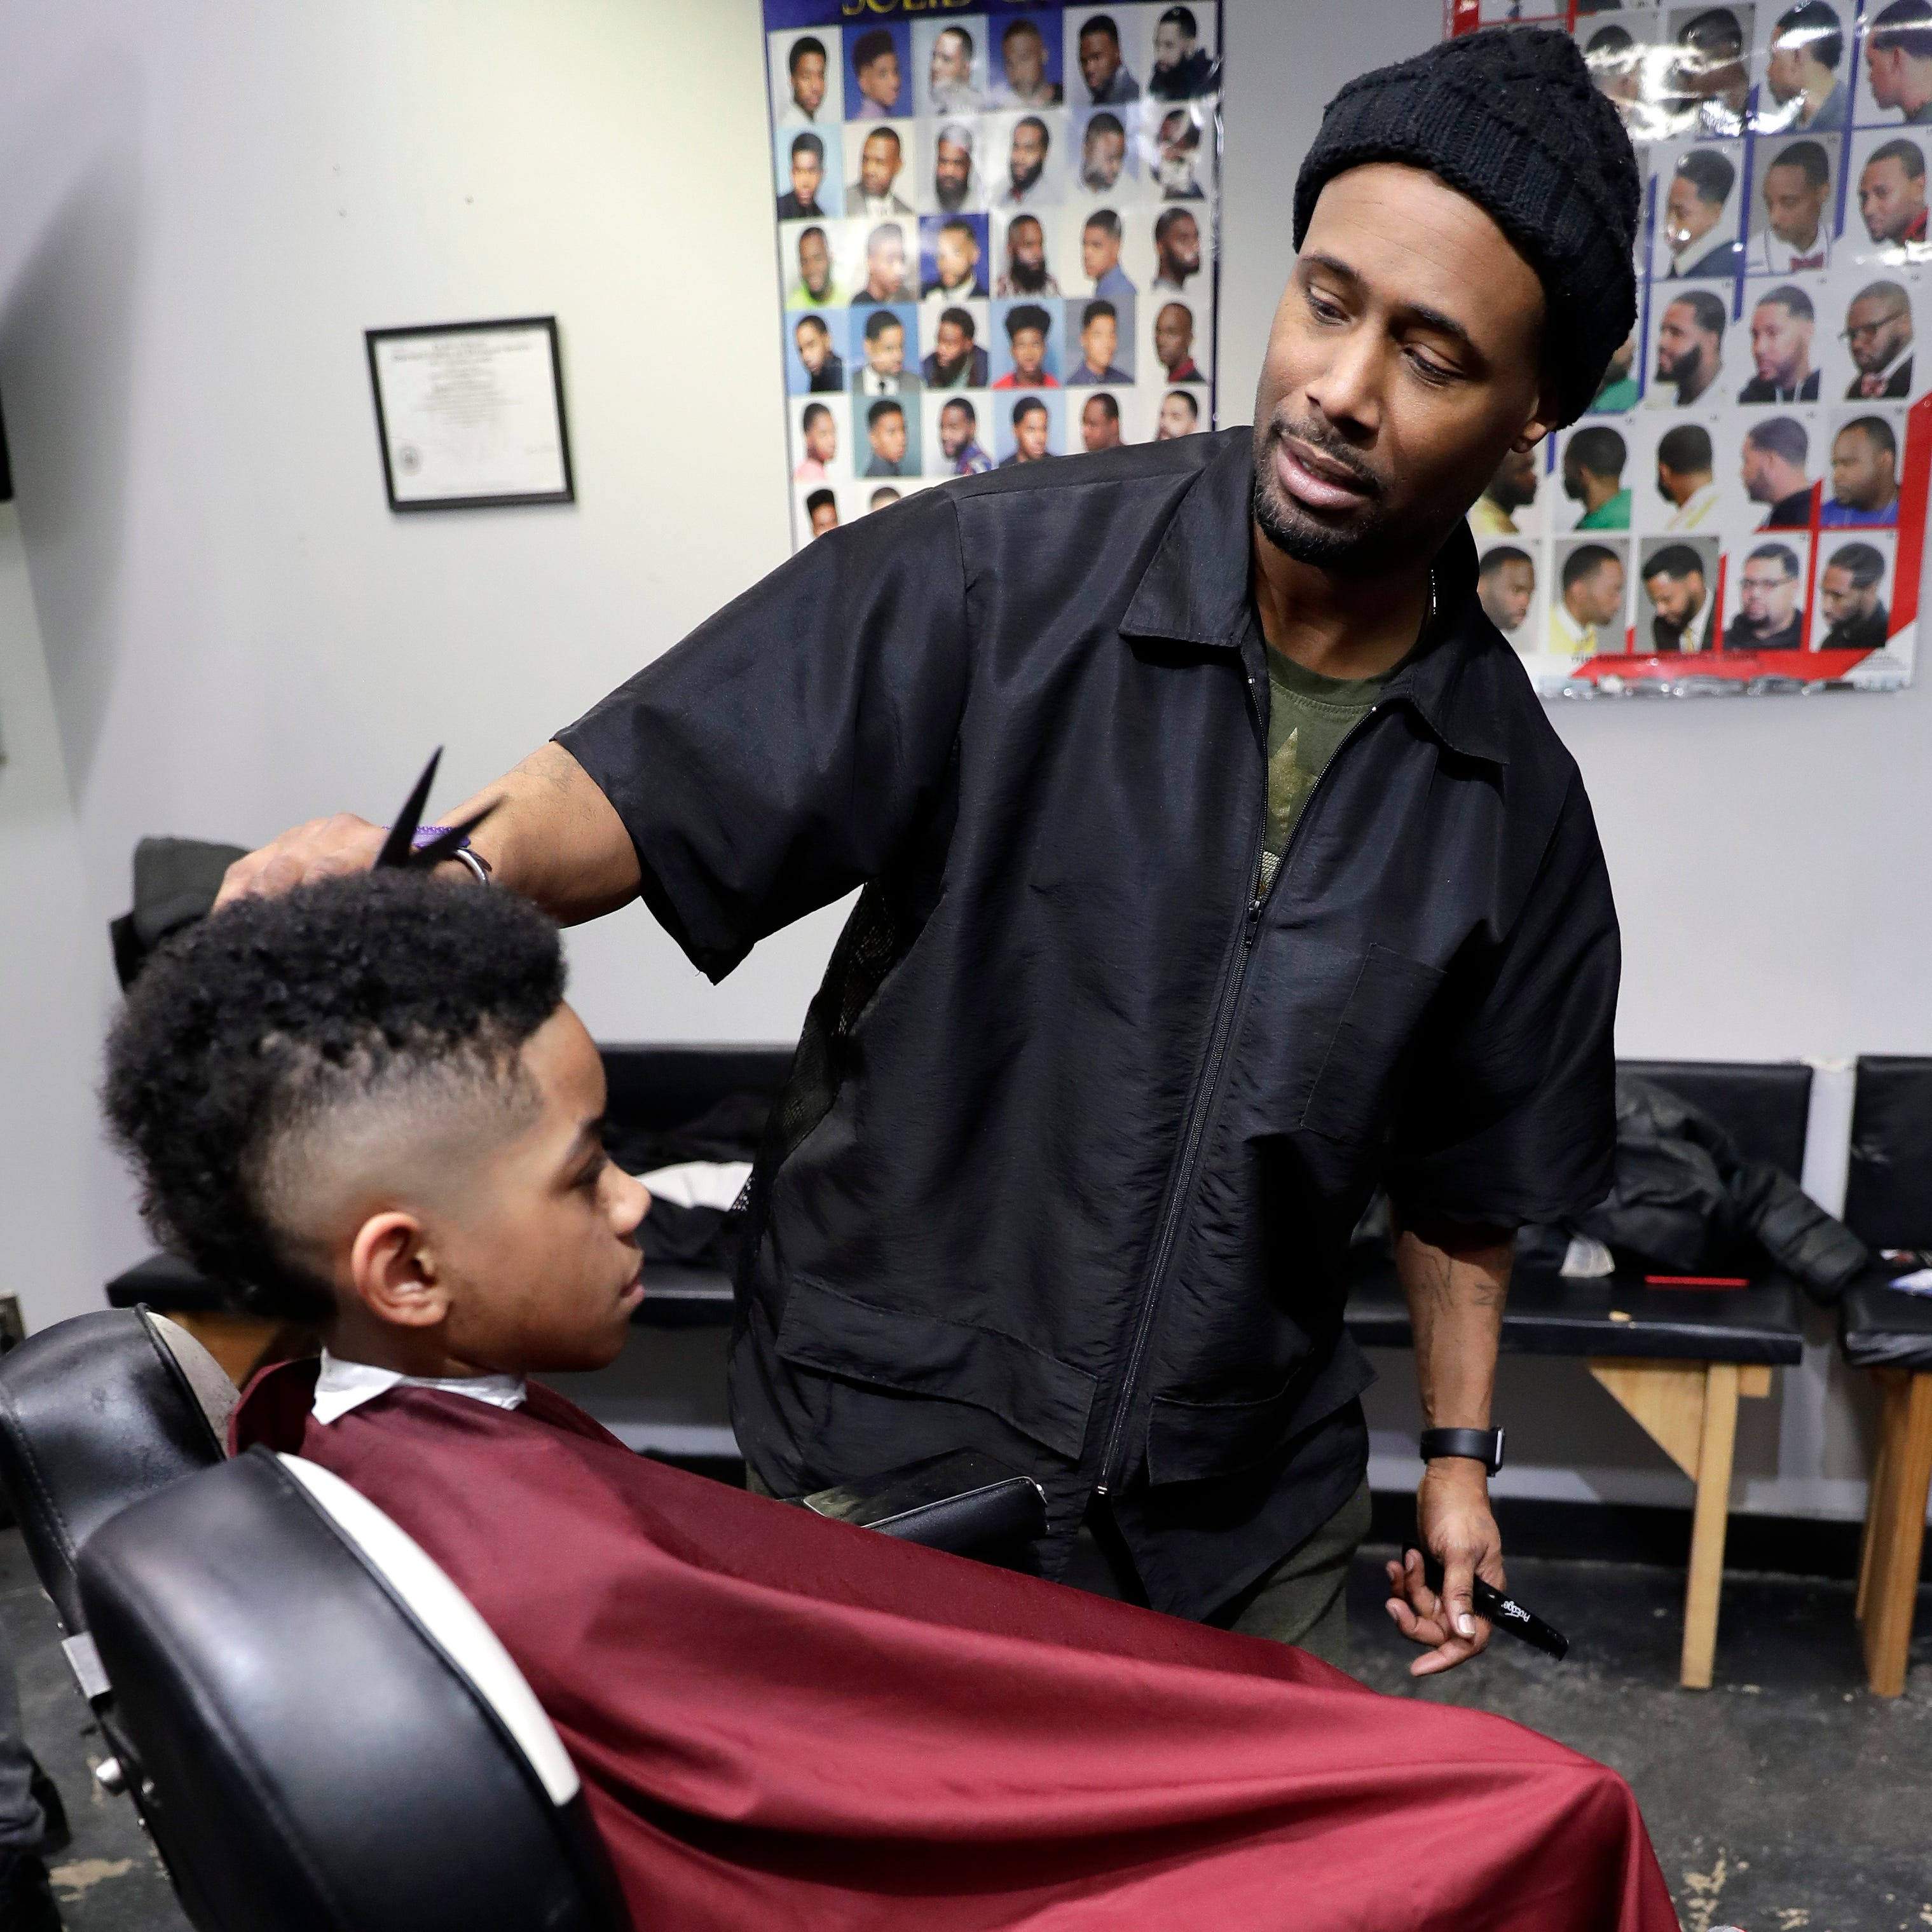 'A place where community happens': How barbershops unite diverse communities in Wisconsin